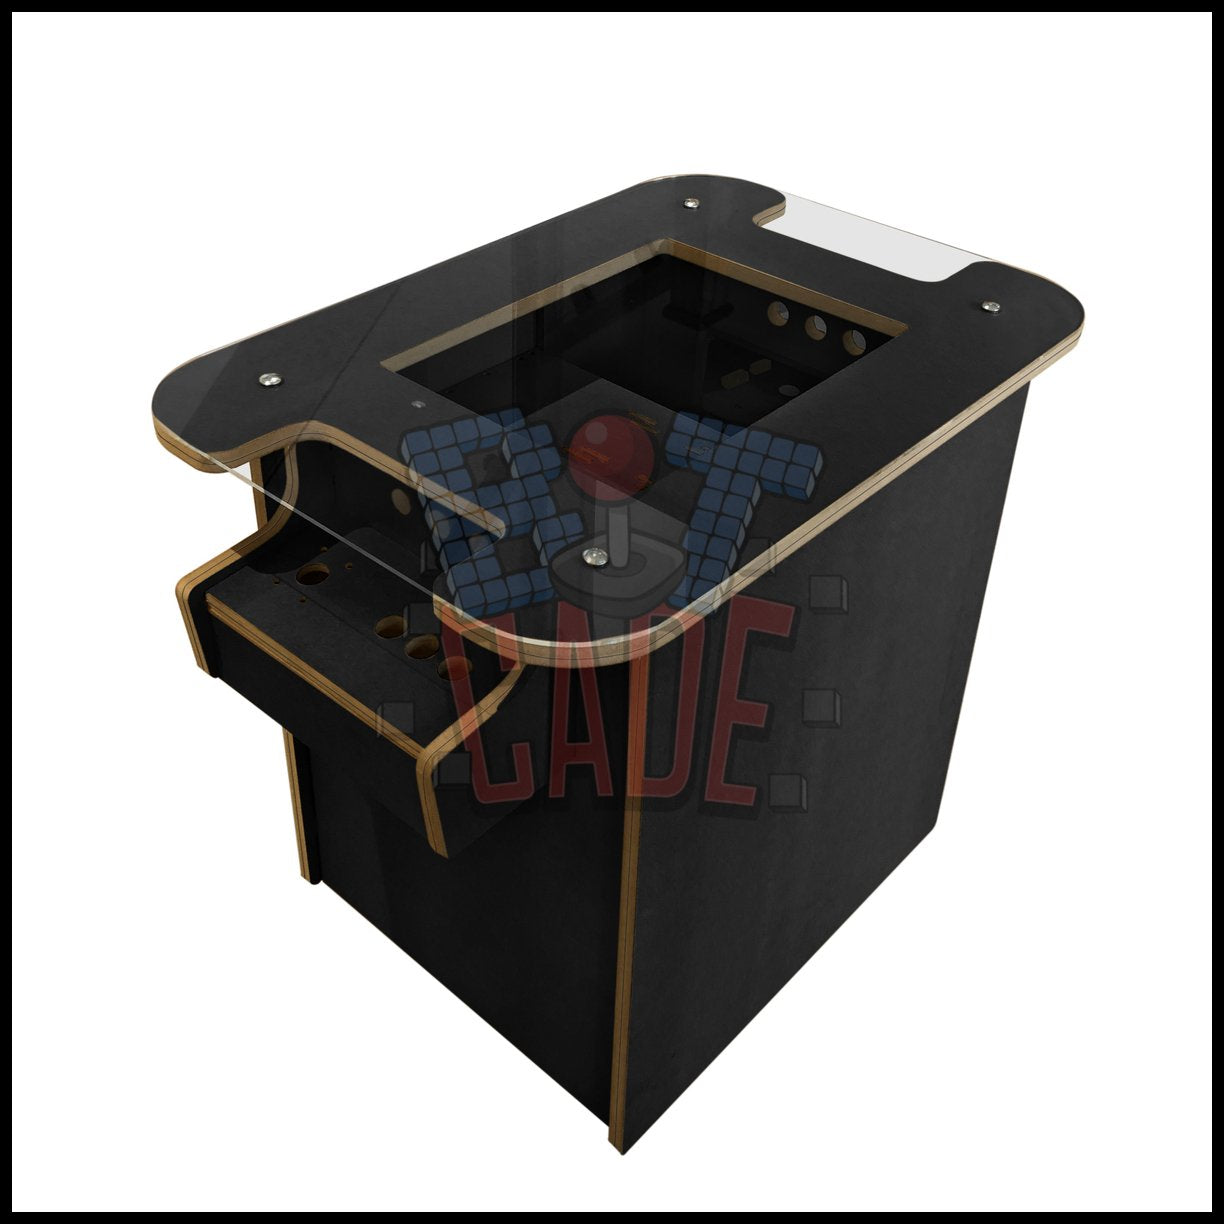 Bitcade - 2 Player Cocktail Table Arcade Machine Kit